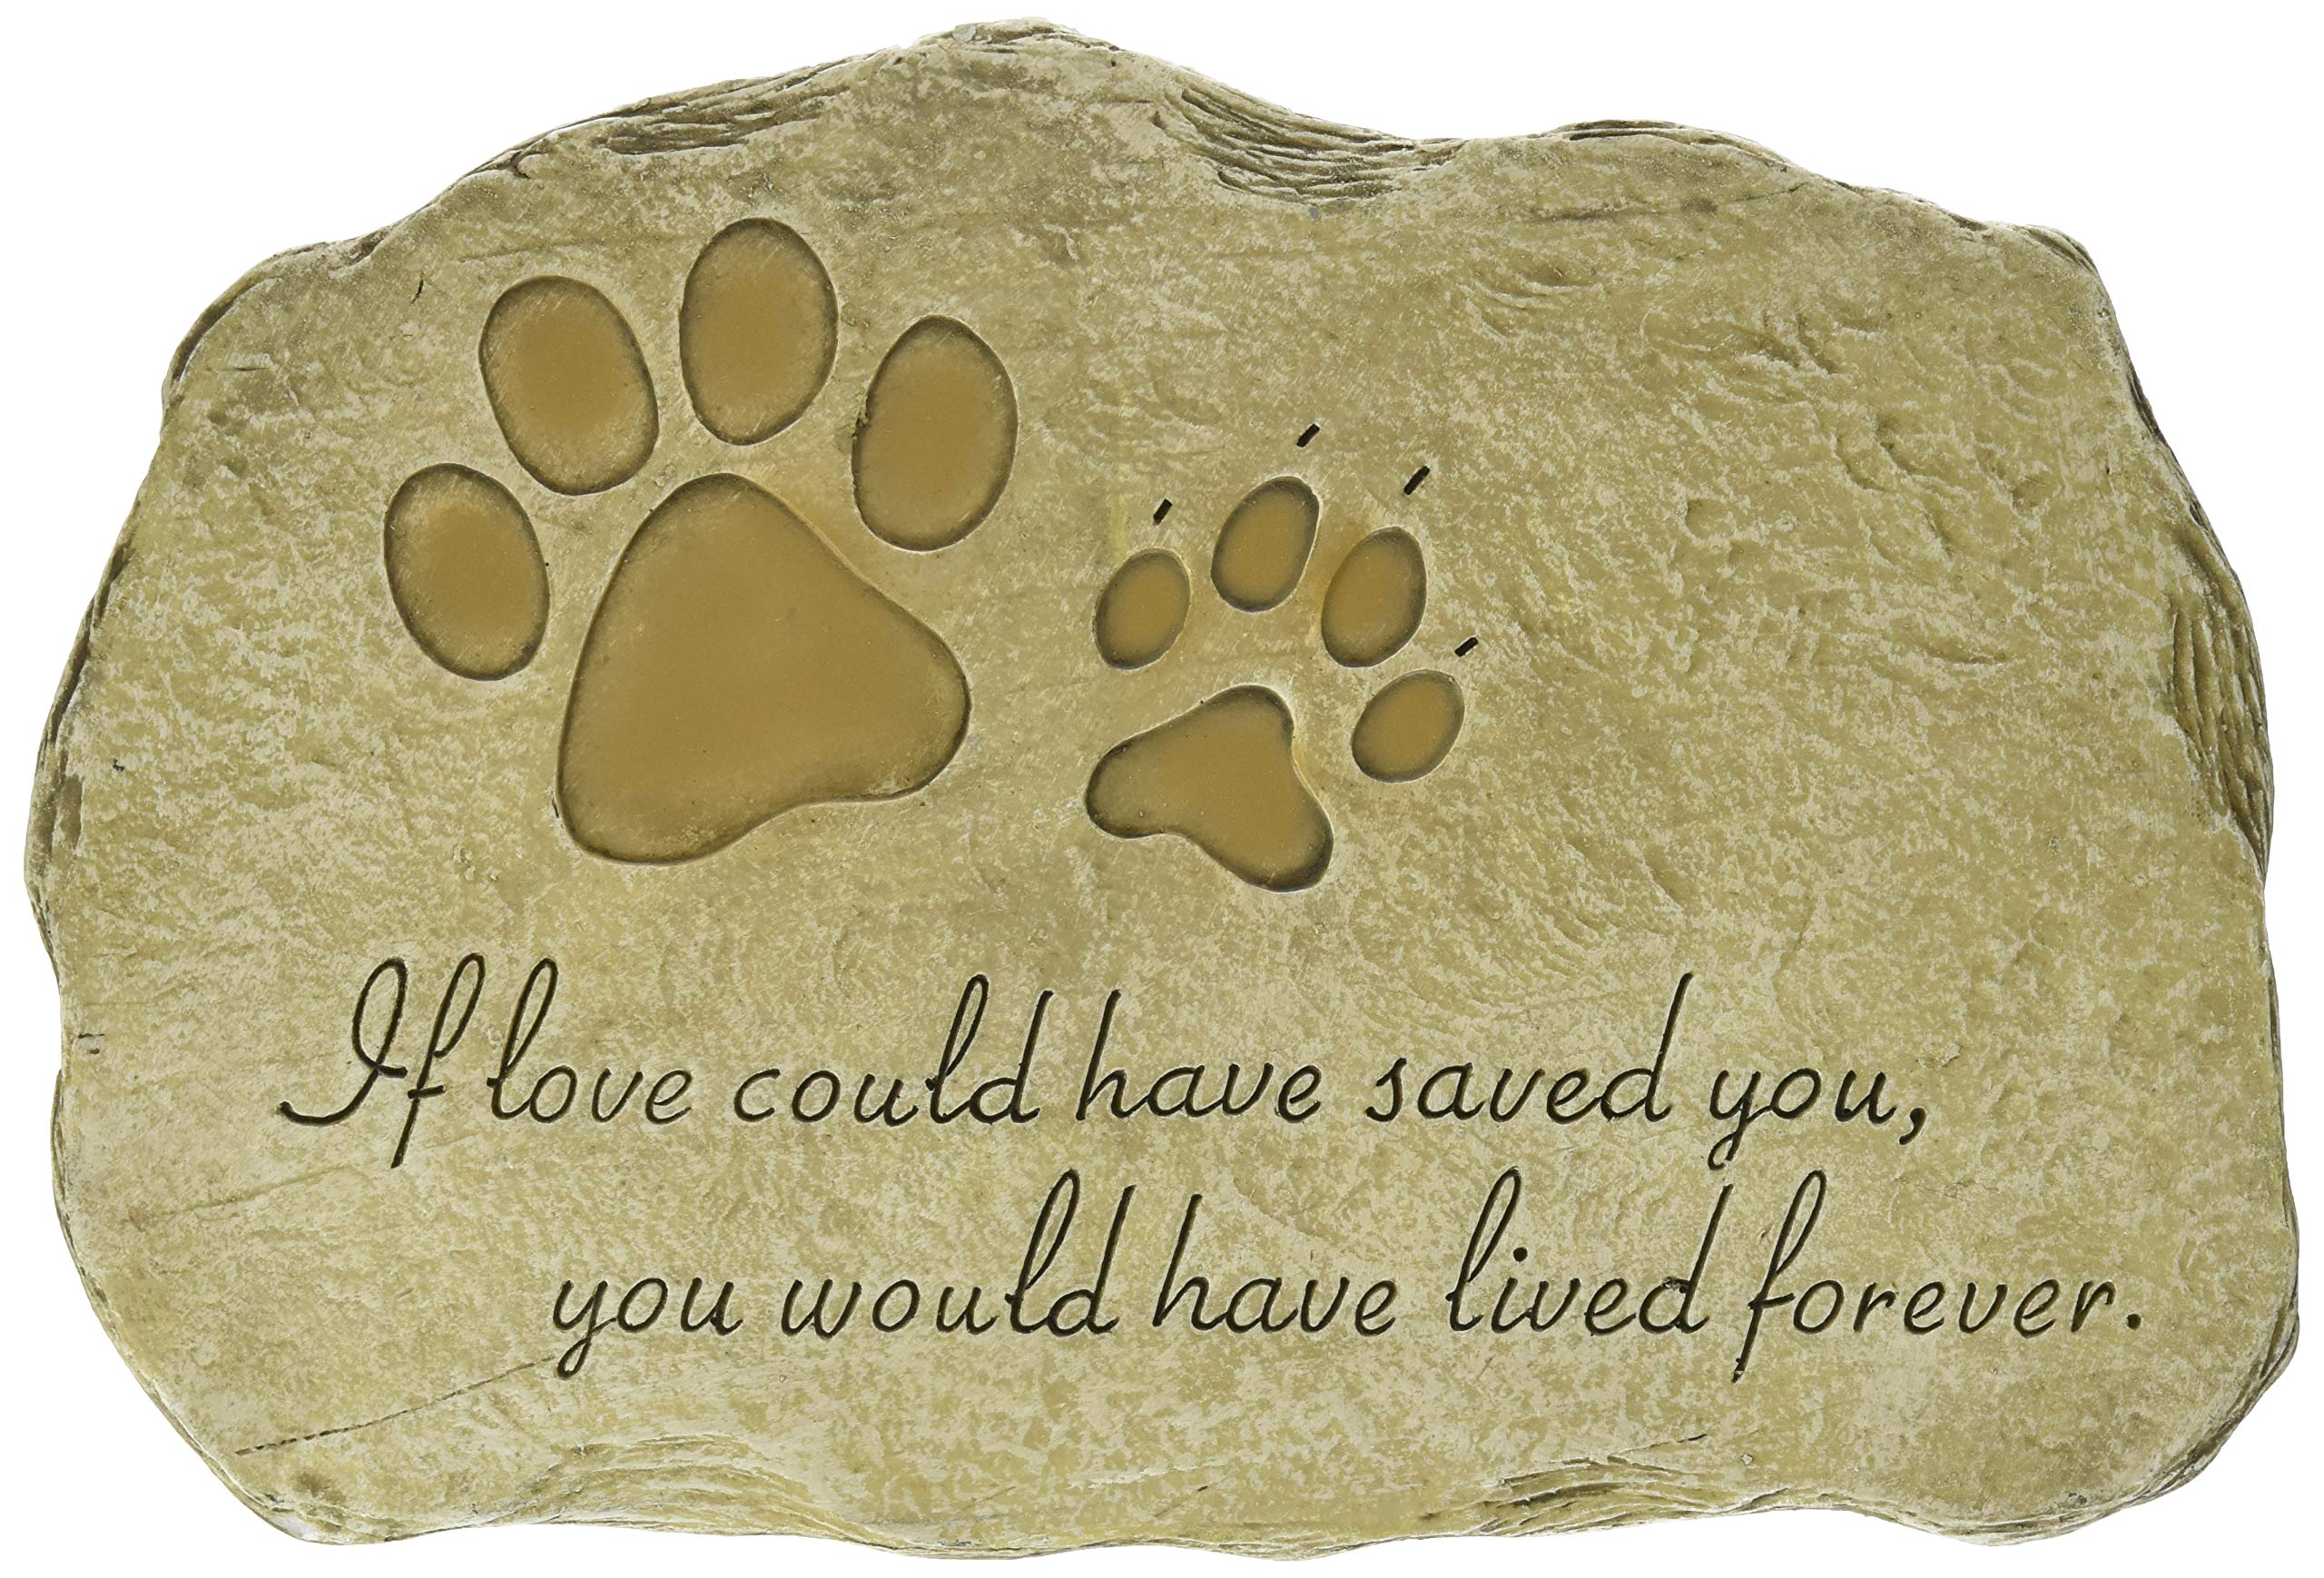 """Evergreen Garden Pet Paw Print Devotion Painted Polystone Stepping Stone - 12""""W x 0.5""""D x 7.5""""H product image"""